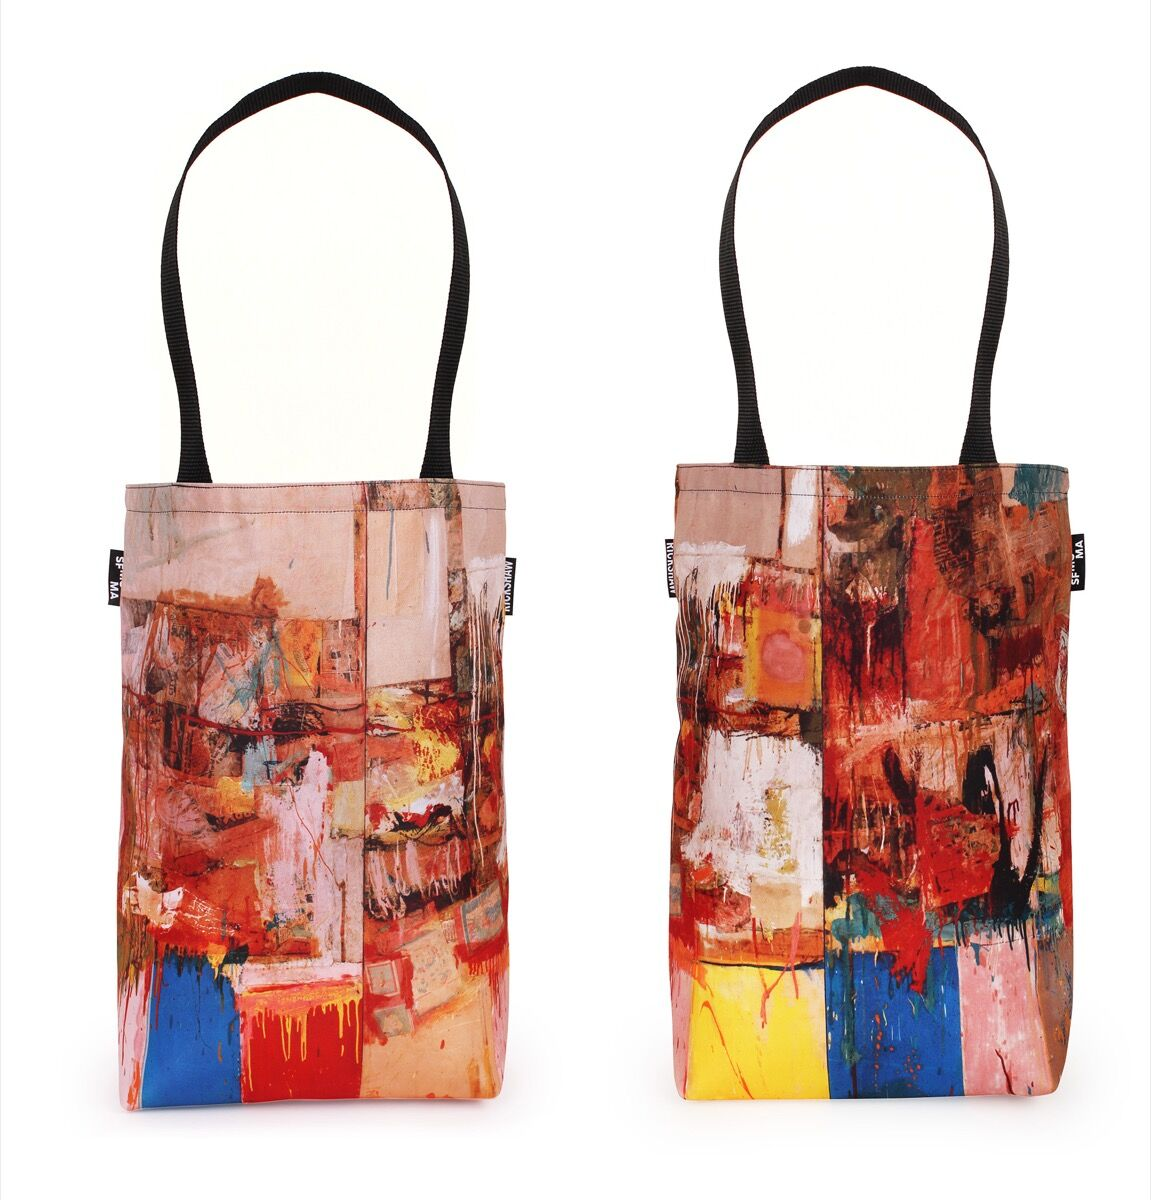 Rauschenberg Collection Tote. Courtesy of SFMOMA.